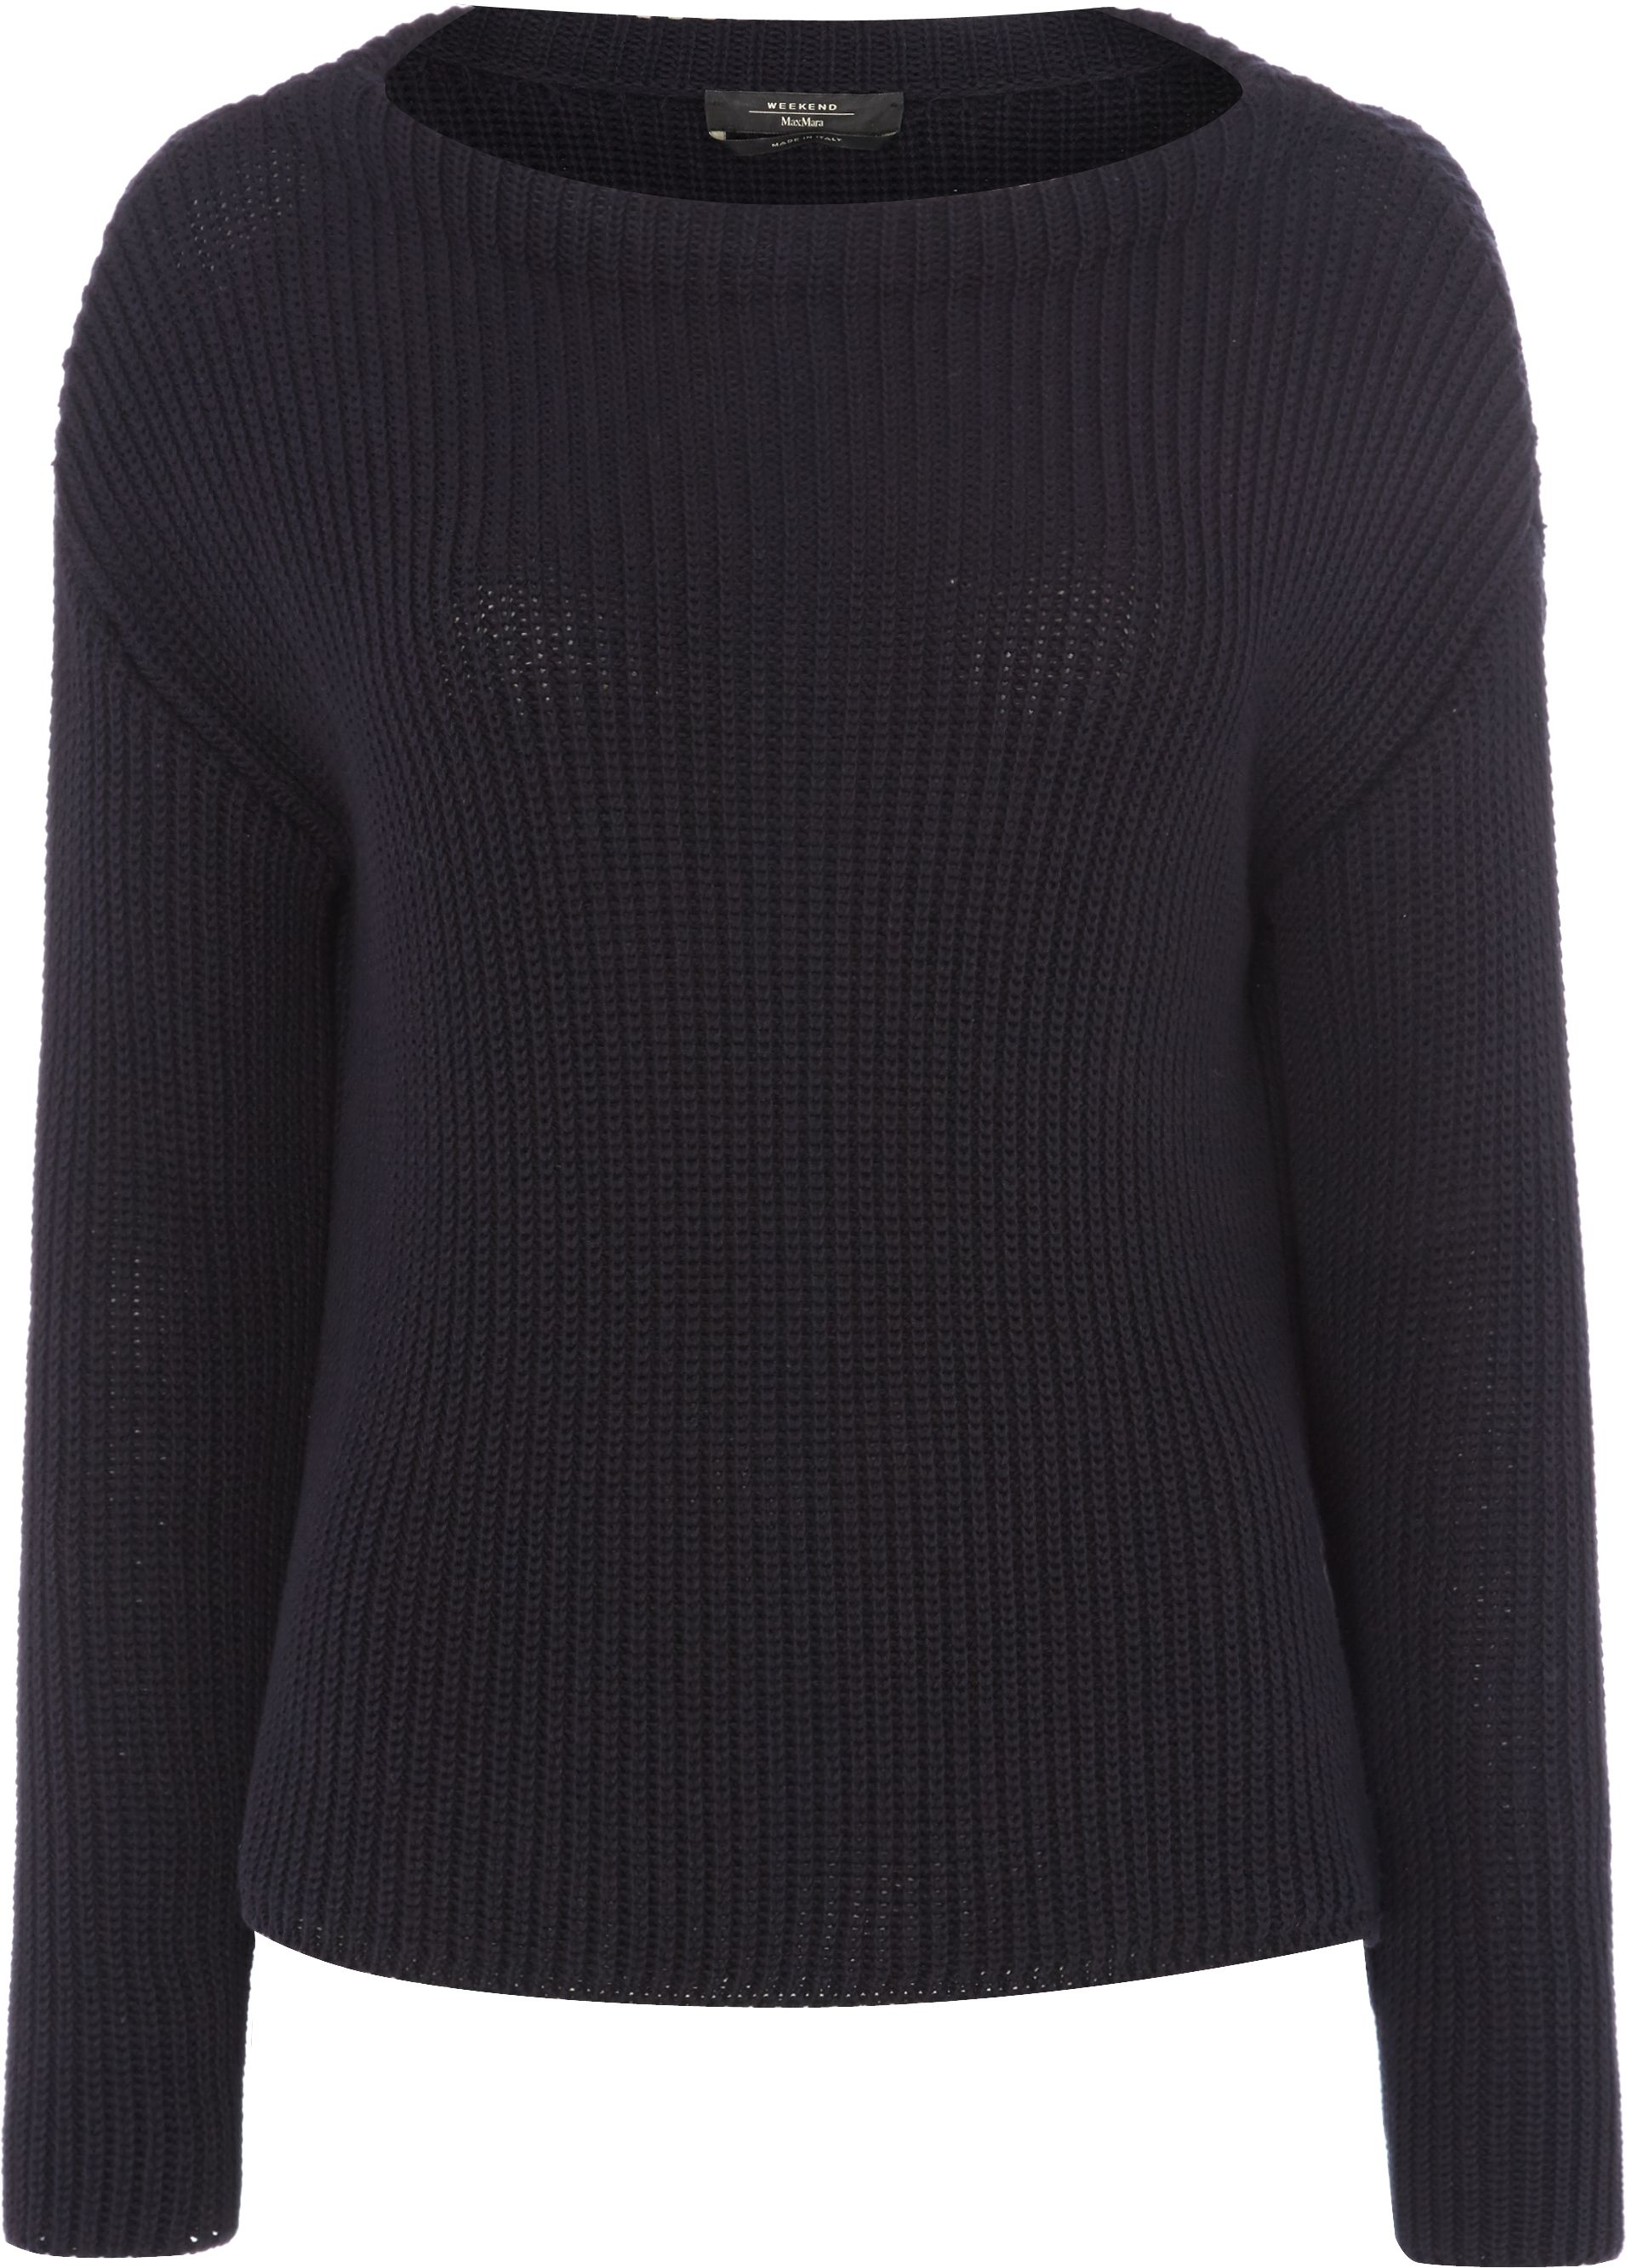 Bracco heavy knit jumper